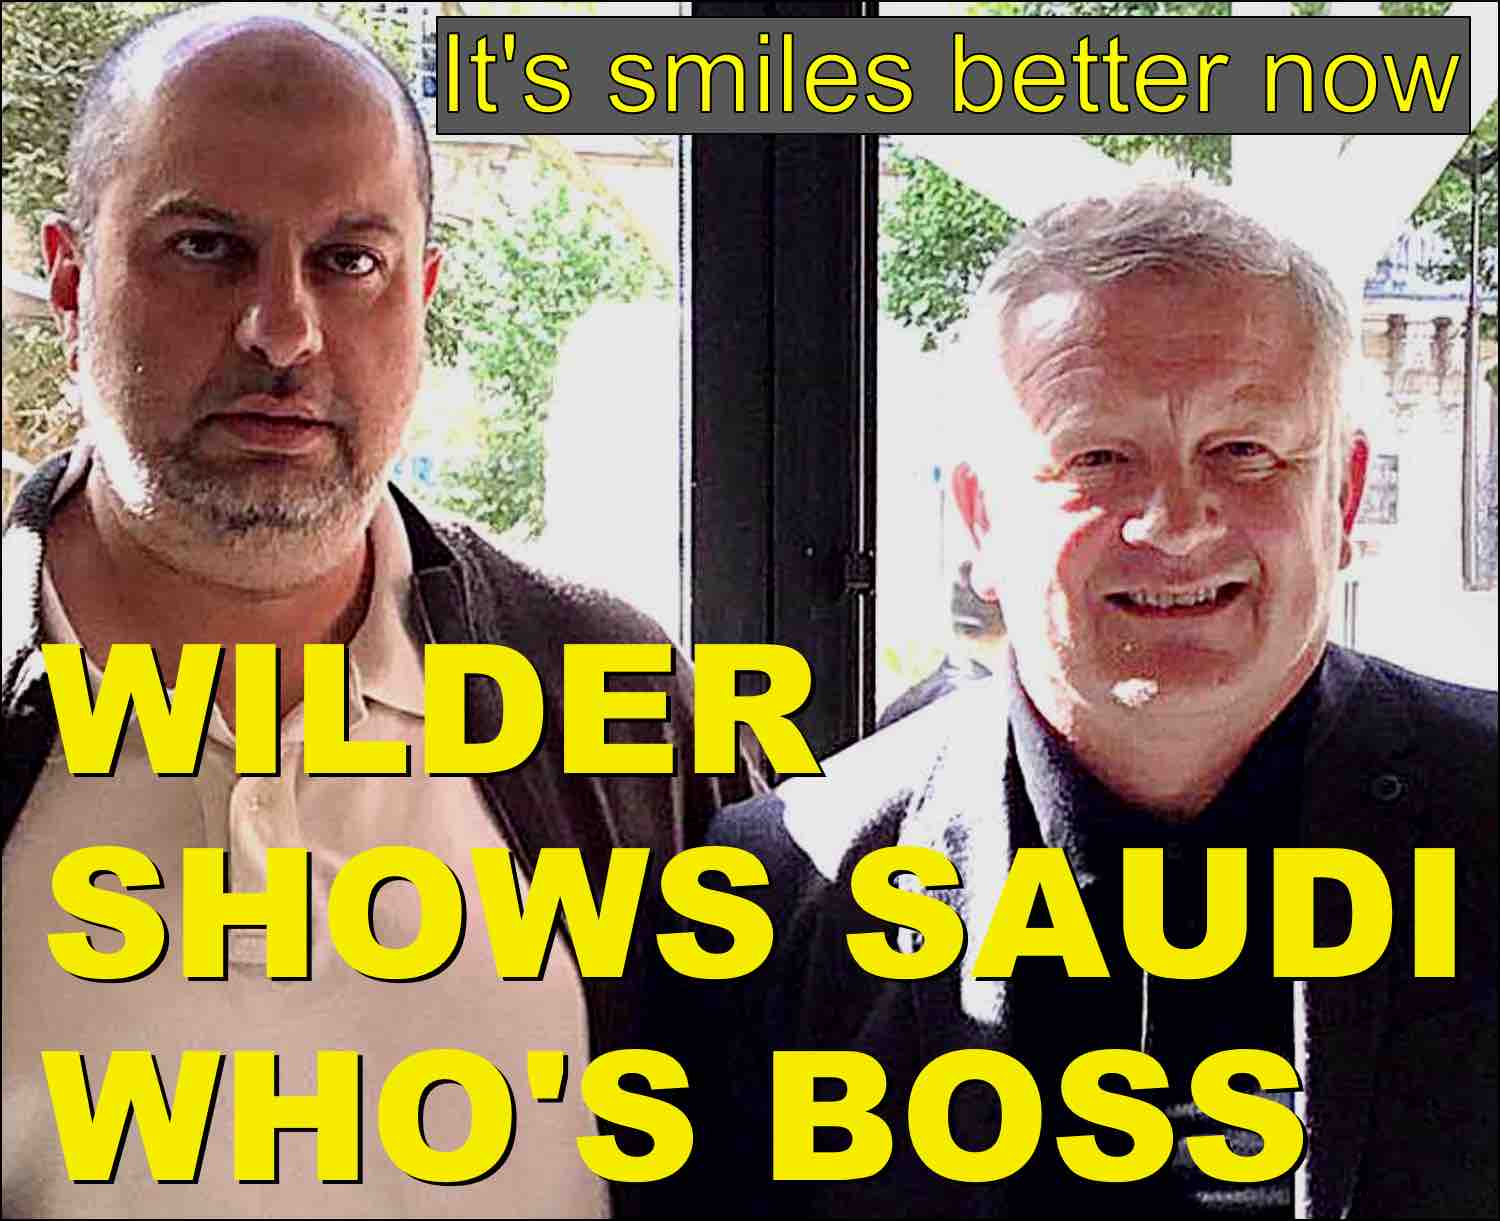 Sheffield+United's+Chris+Wilder+commits+to+Blades+after+showing+Bramall+Lane+Saudi+co-owner+who's+the+boss.jpeg